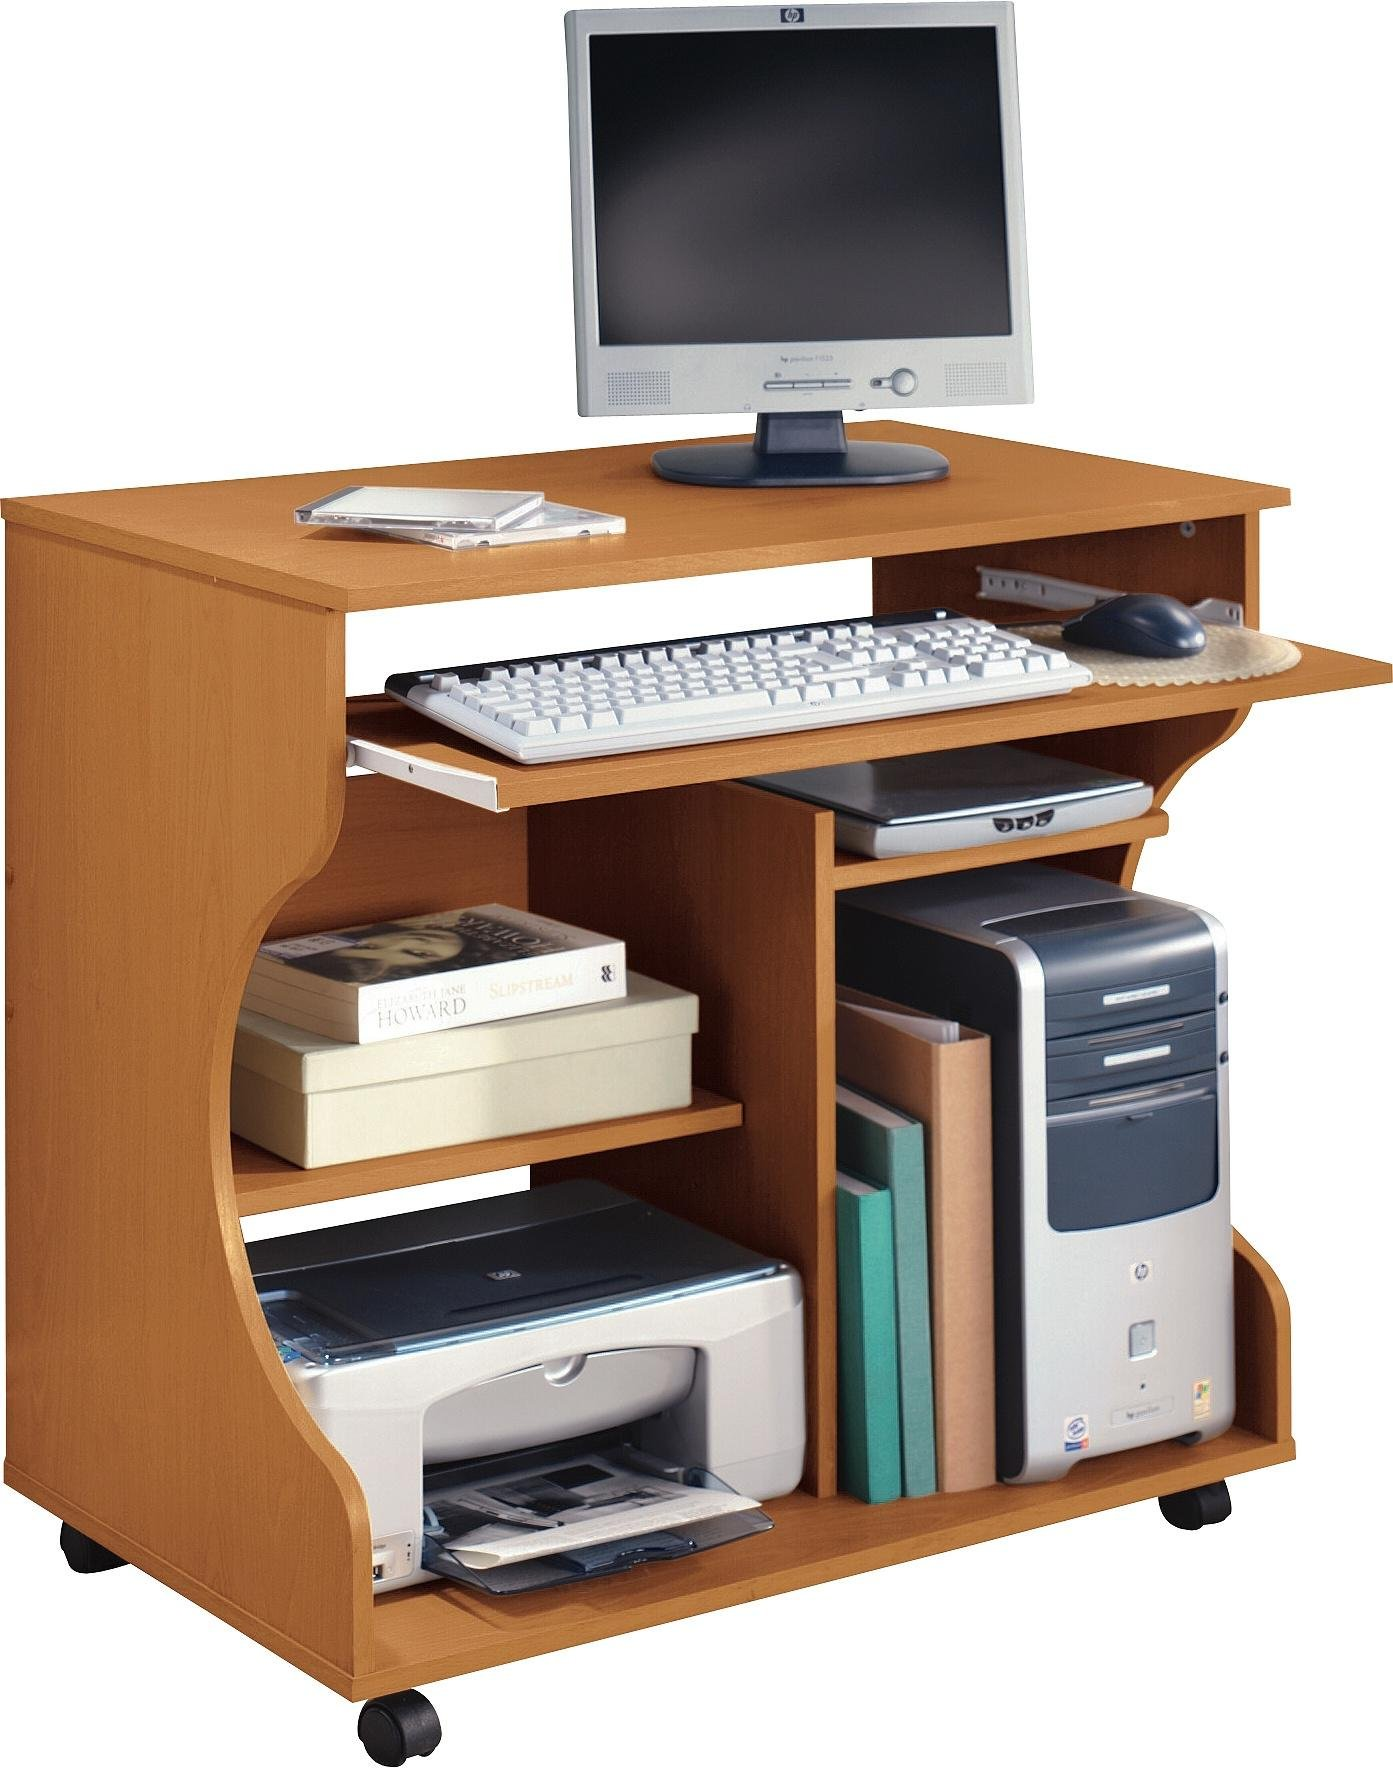 Home curved computer desk trolley pine effect